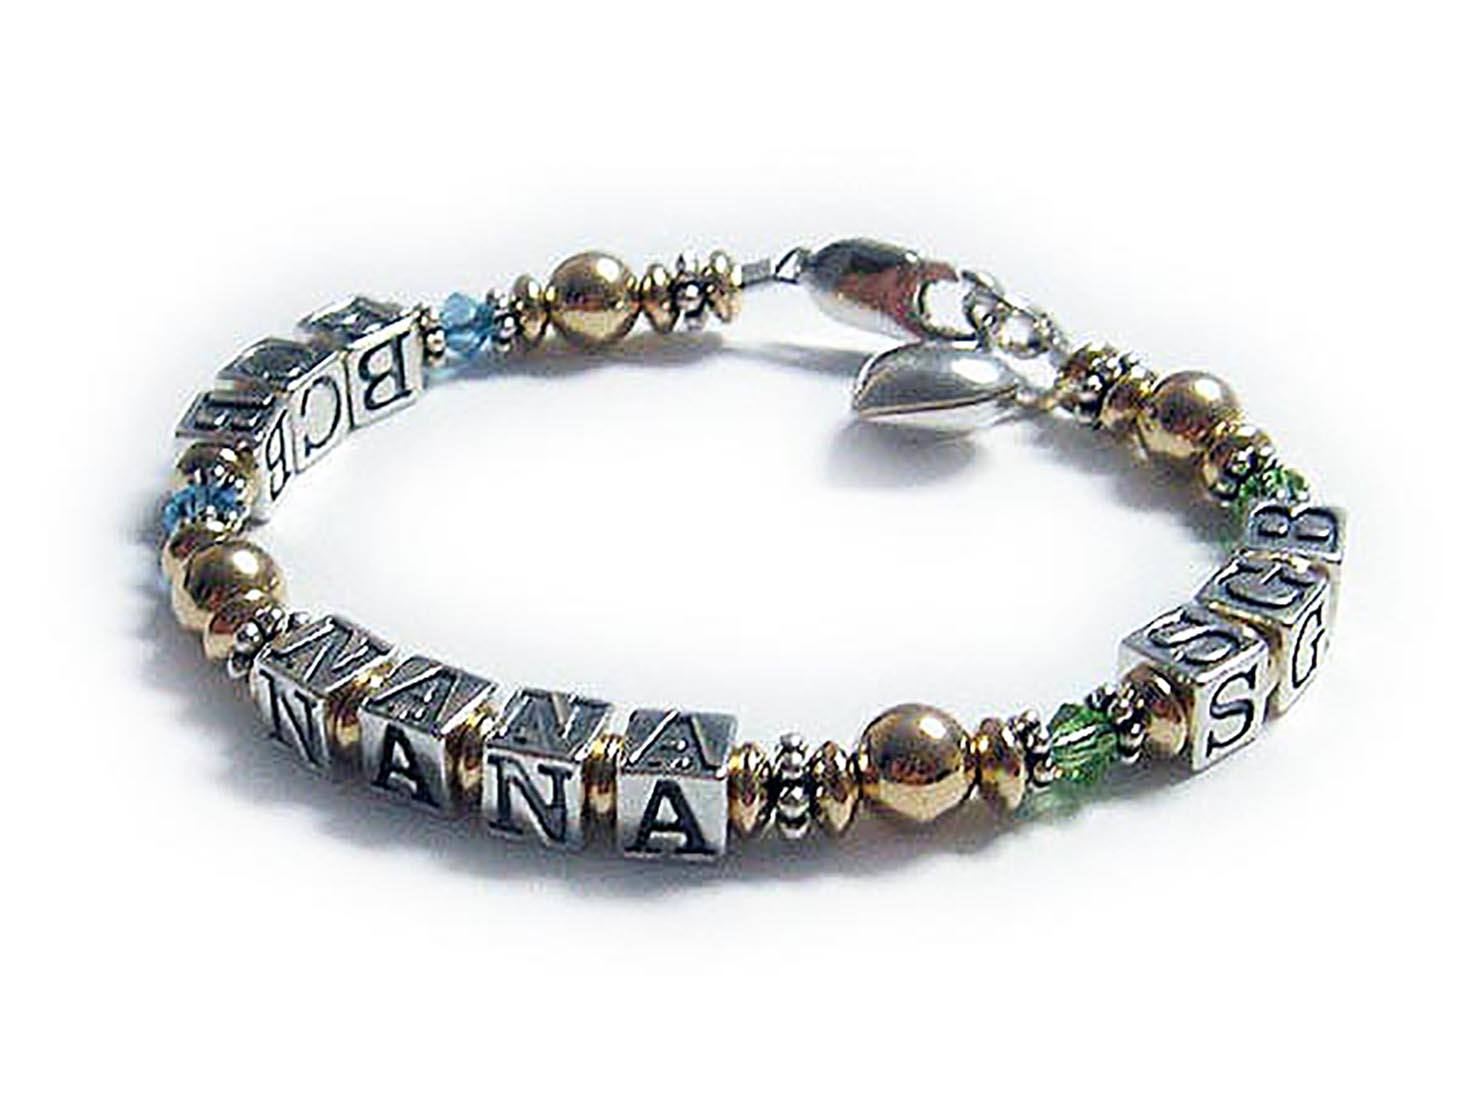 "DBL-MB5-1string bracelet with 3 ""names"". Enter: BCB/Mar - NANA - SGB/Aug This is a one string bracelet. NANA has 2 grandkids so we put one on each side of NANA and accented their intiials with their birthstone crystals. BCB is March or Aquamarine Swarovski crystals and SGB is August or Peridot Swarovski crystals. The picked the free lobster clasp and added a sterling silver Puffed Heart Charm."